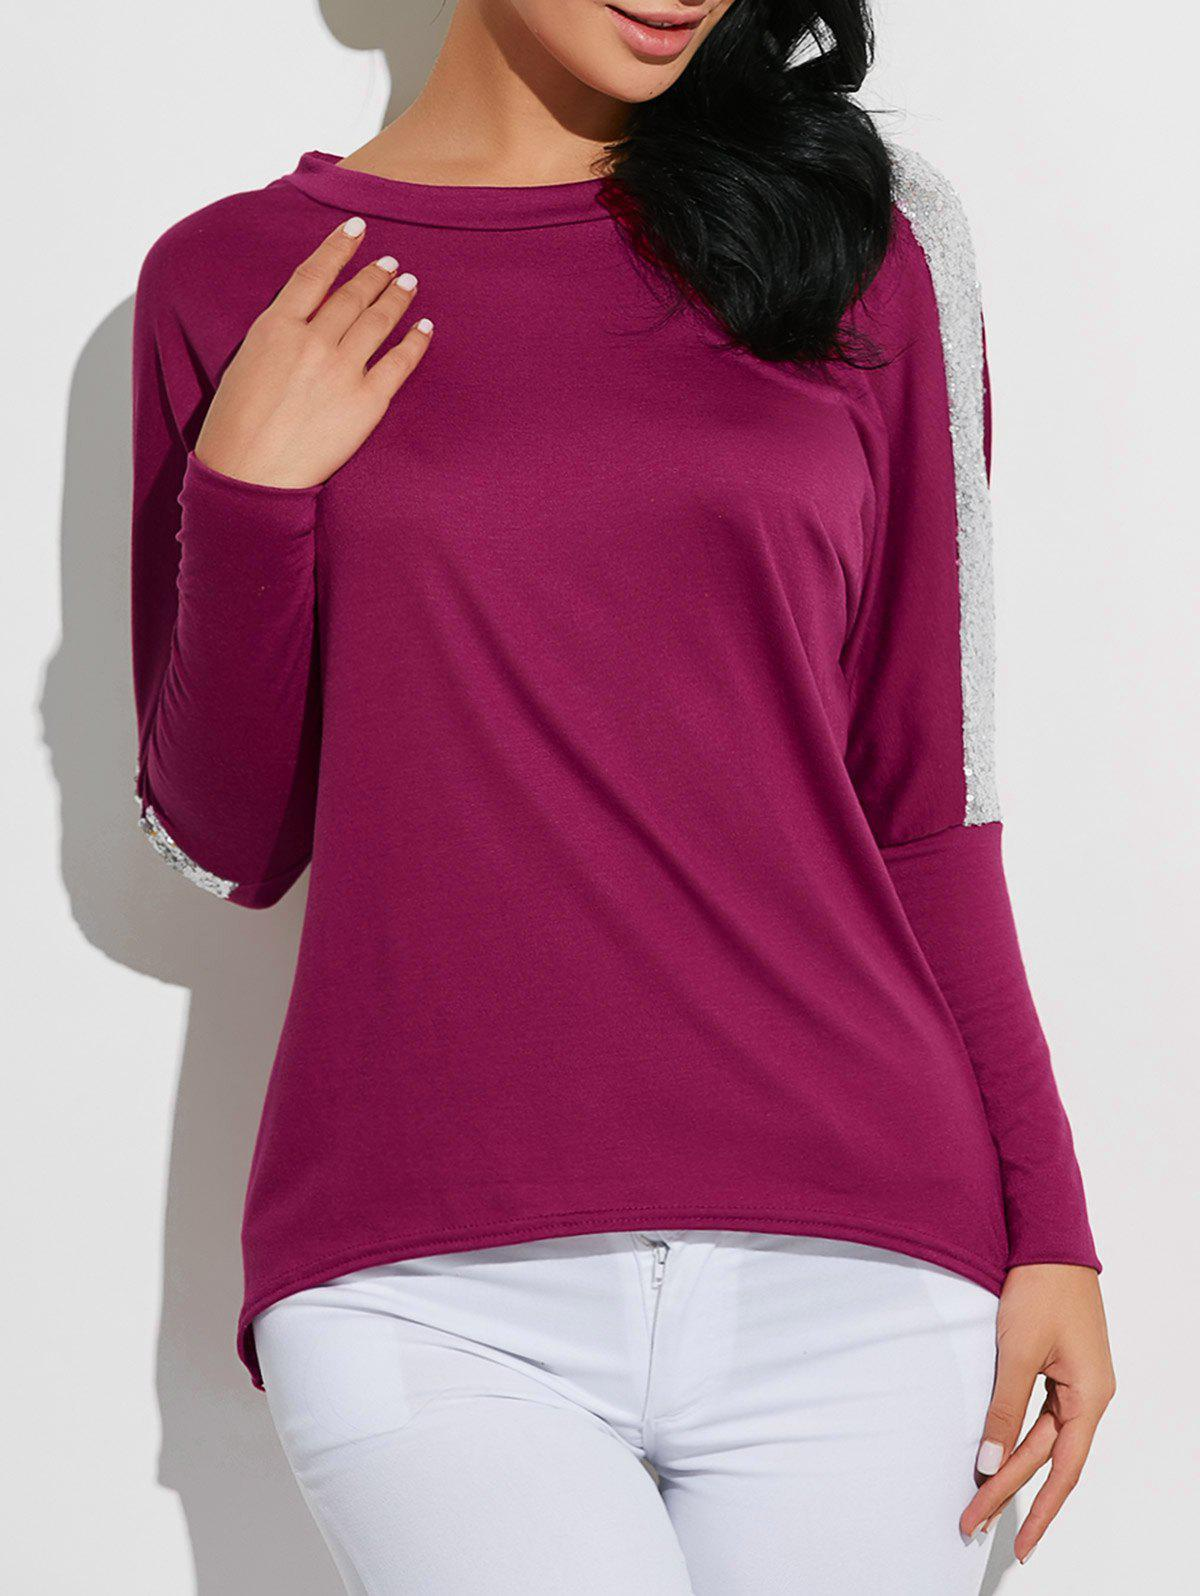 High-Low Sequined T-Shirt - PURPLE S